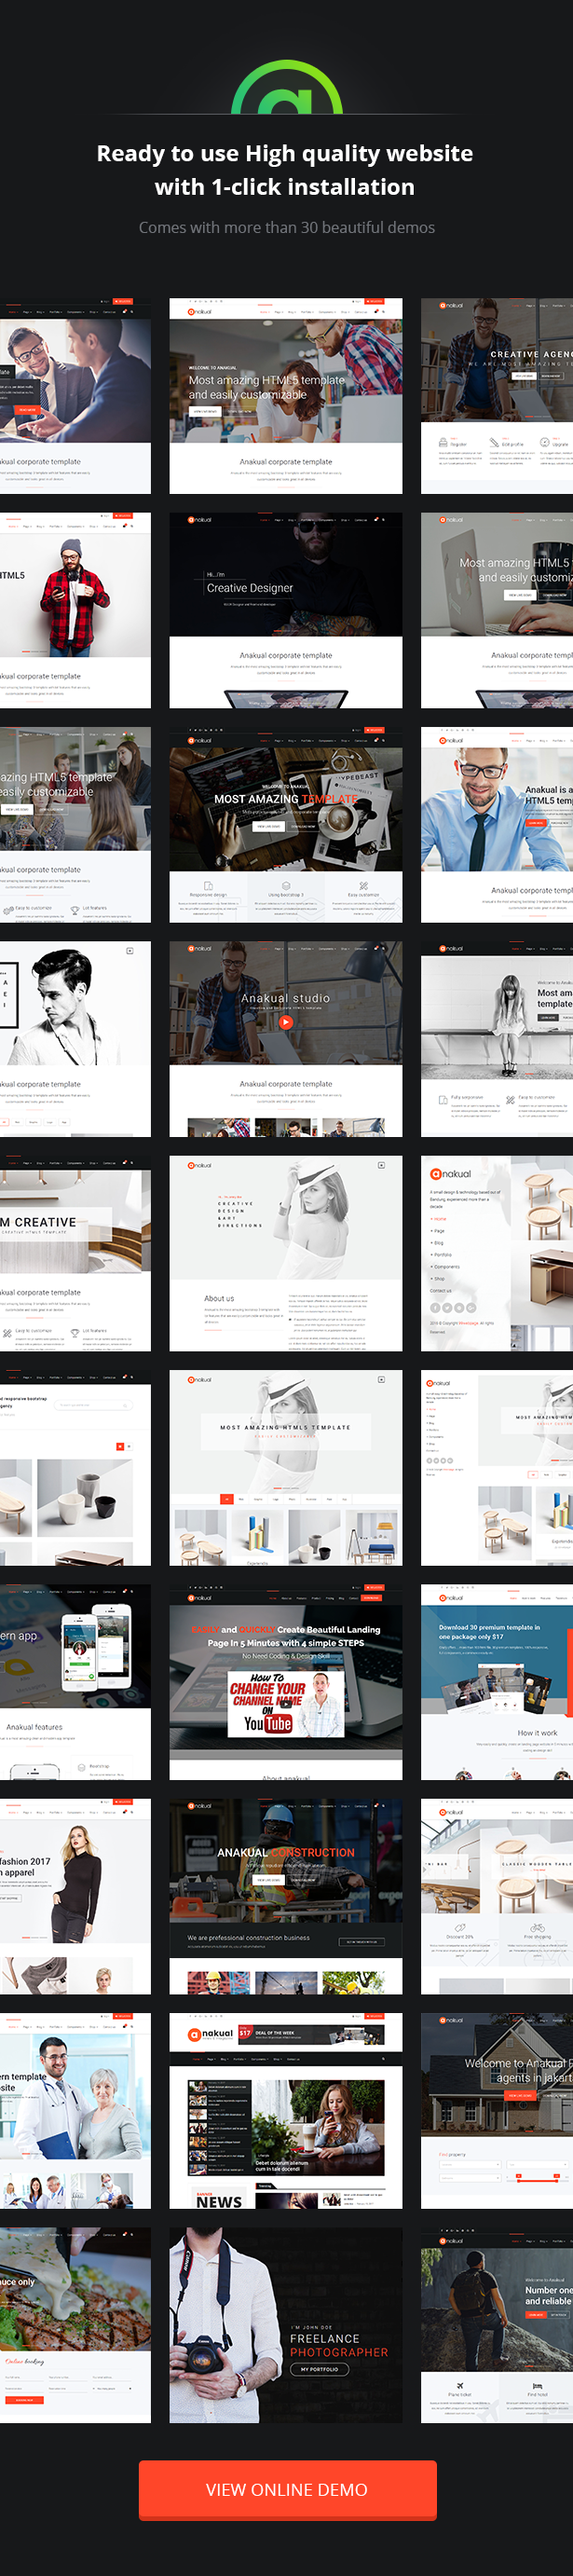 Download Anakual – Multipurpose Corporate and Creative WordPress Theme nulled desc img03